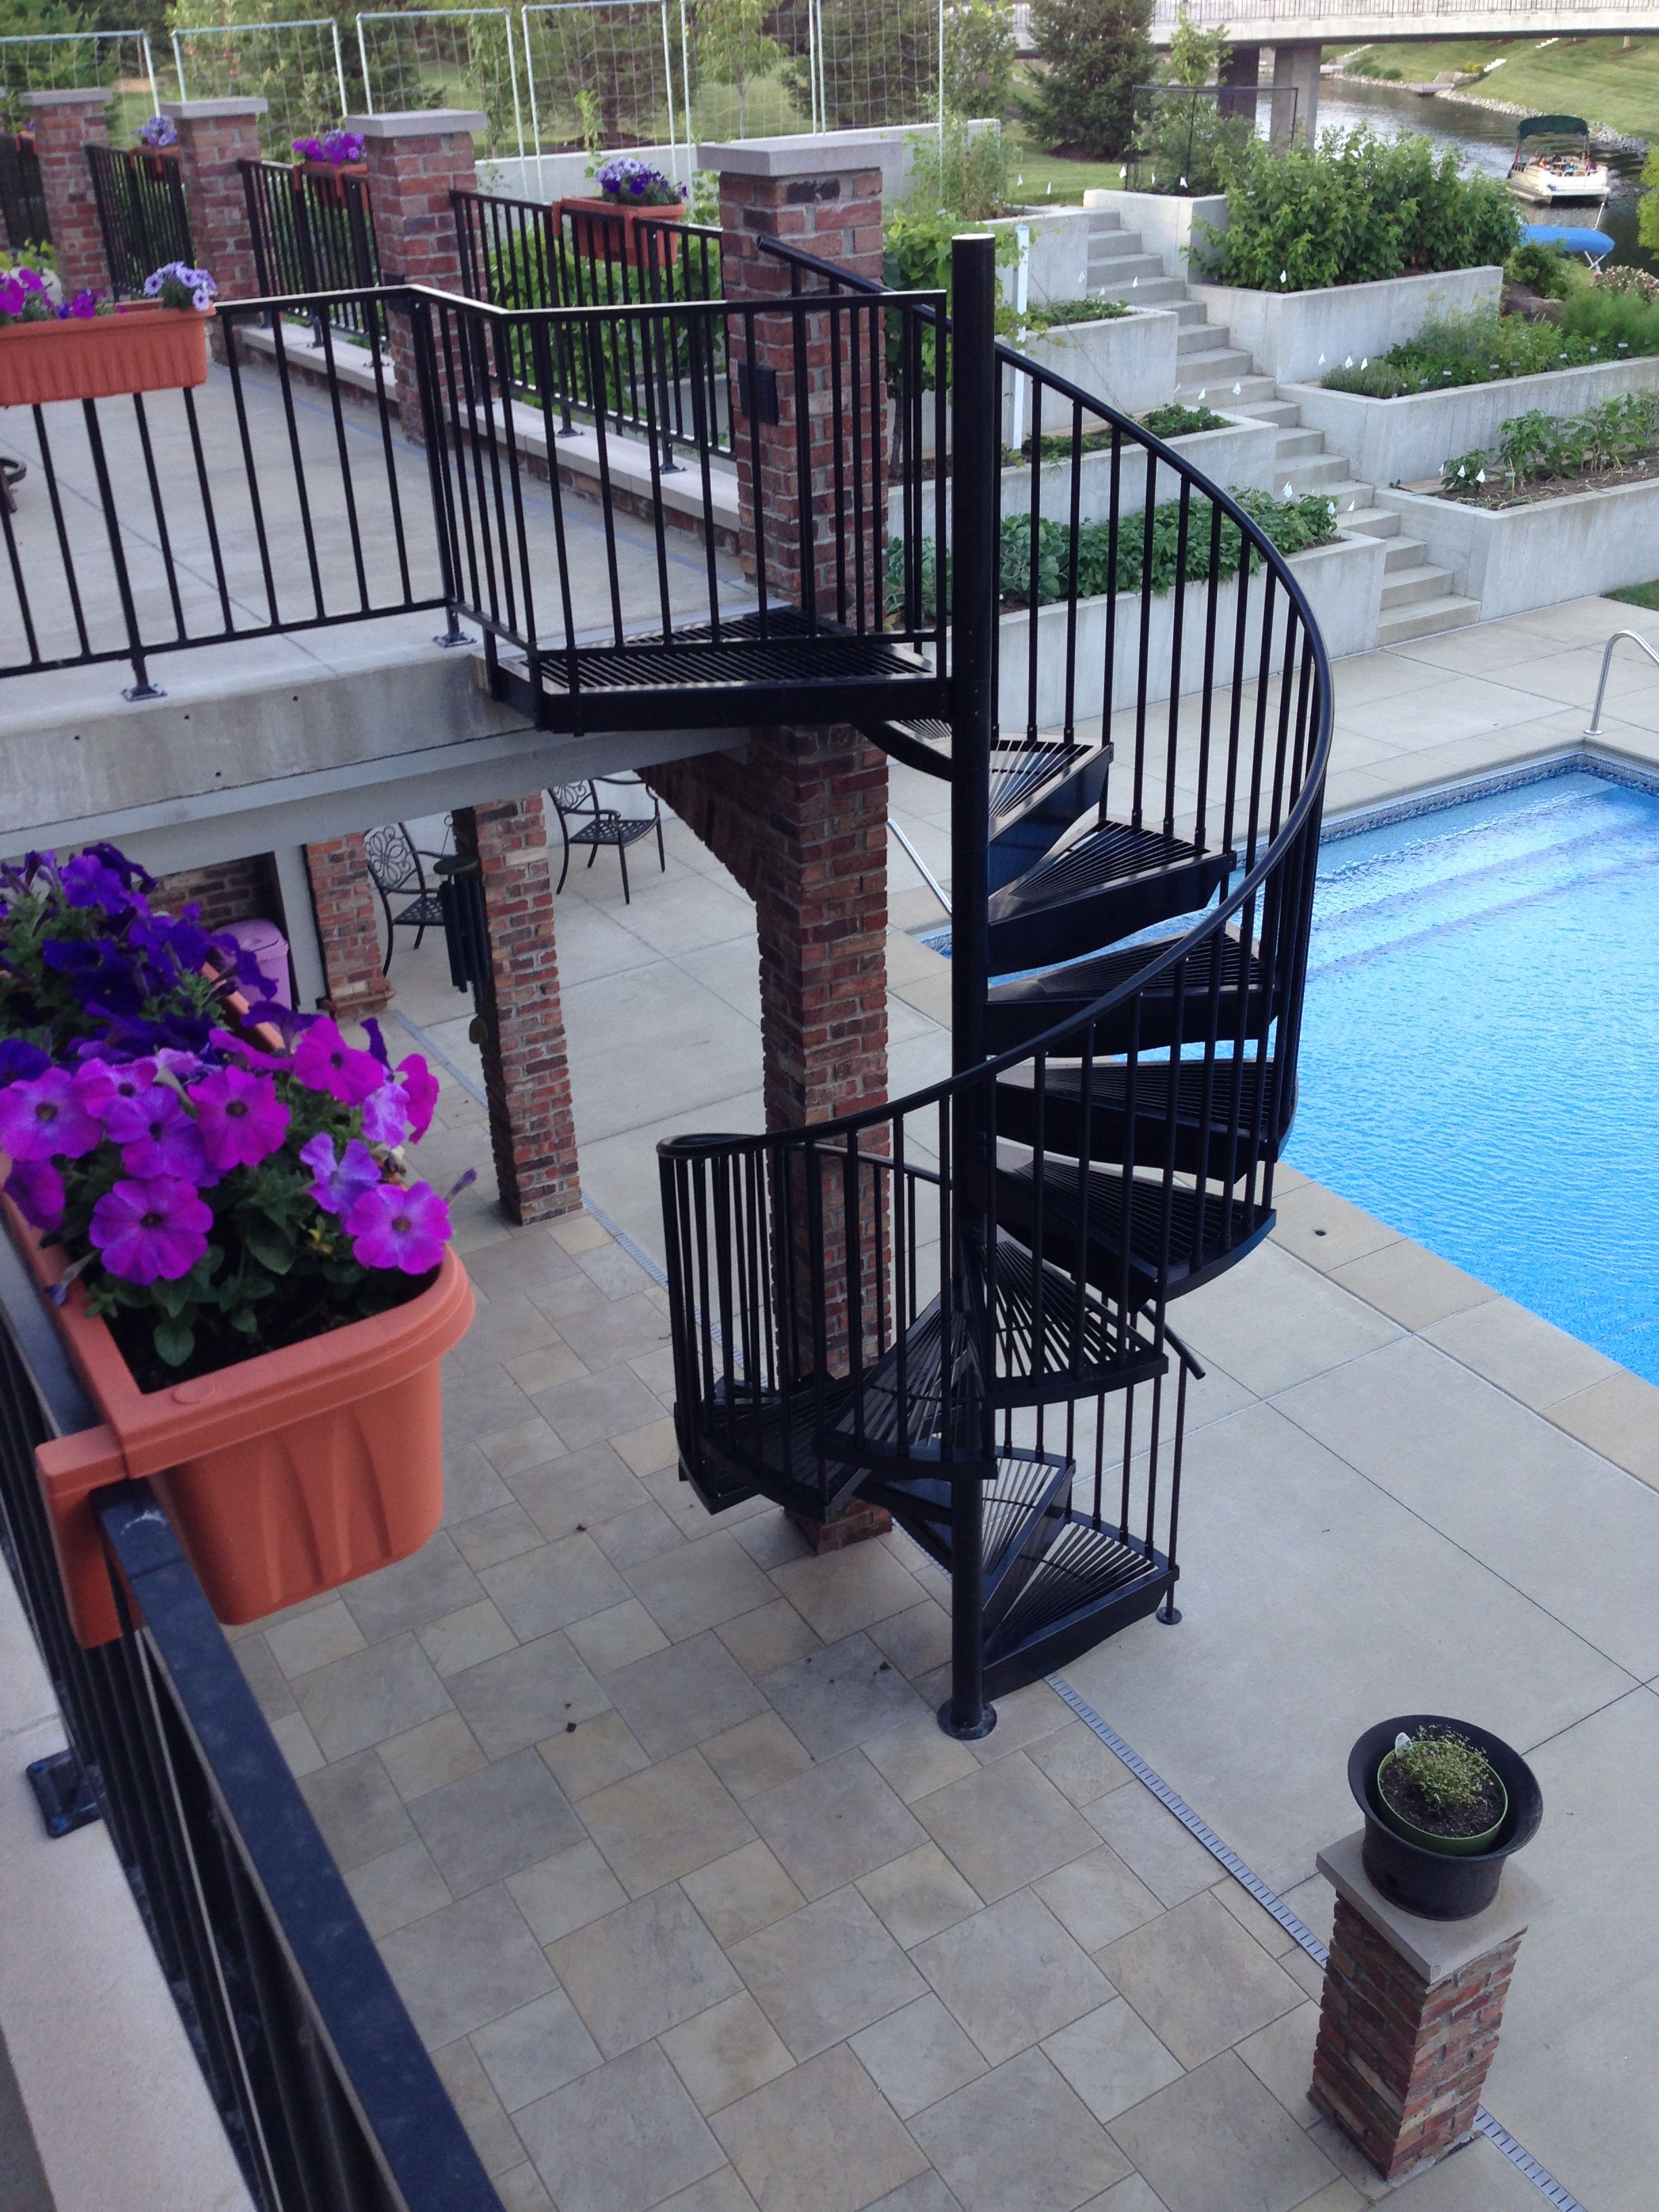 Best Aluminum Powder Coated Spiral Stair On A Poolside Deck 400 x 300